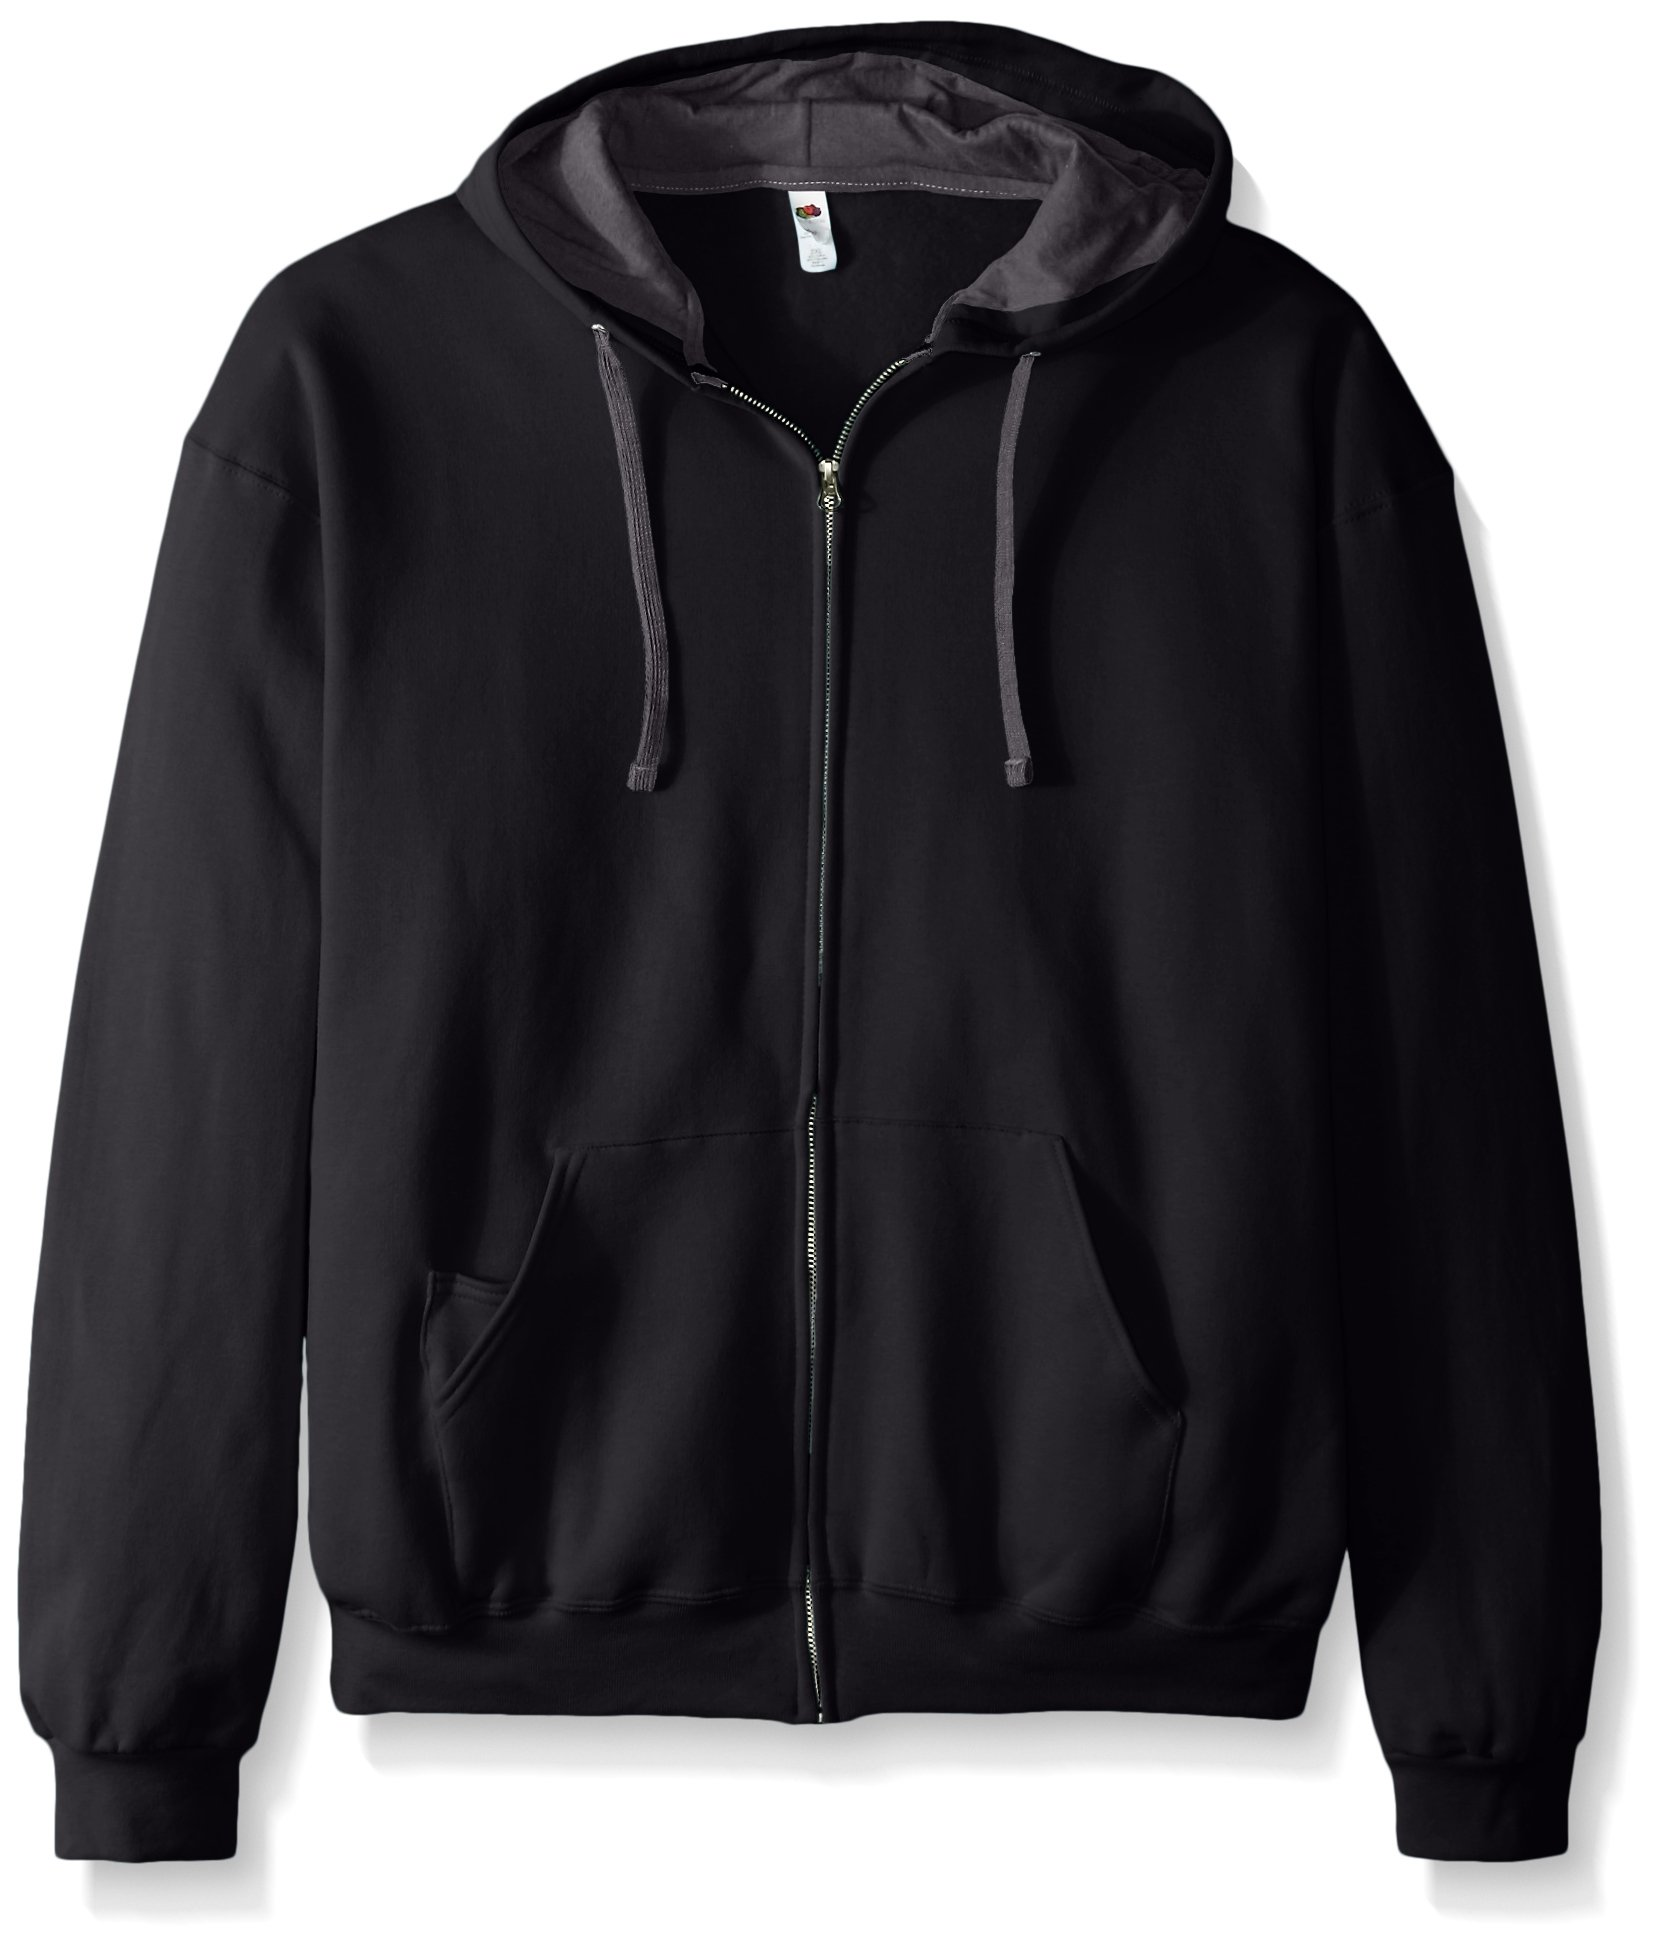 Fruit of the Loom Men's Full-Zip Hooded Sweatshirt - Extra Sizes, Black, XXX-Large by Fruit of the Loom